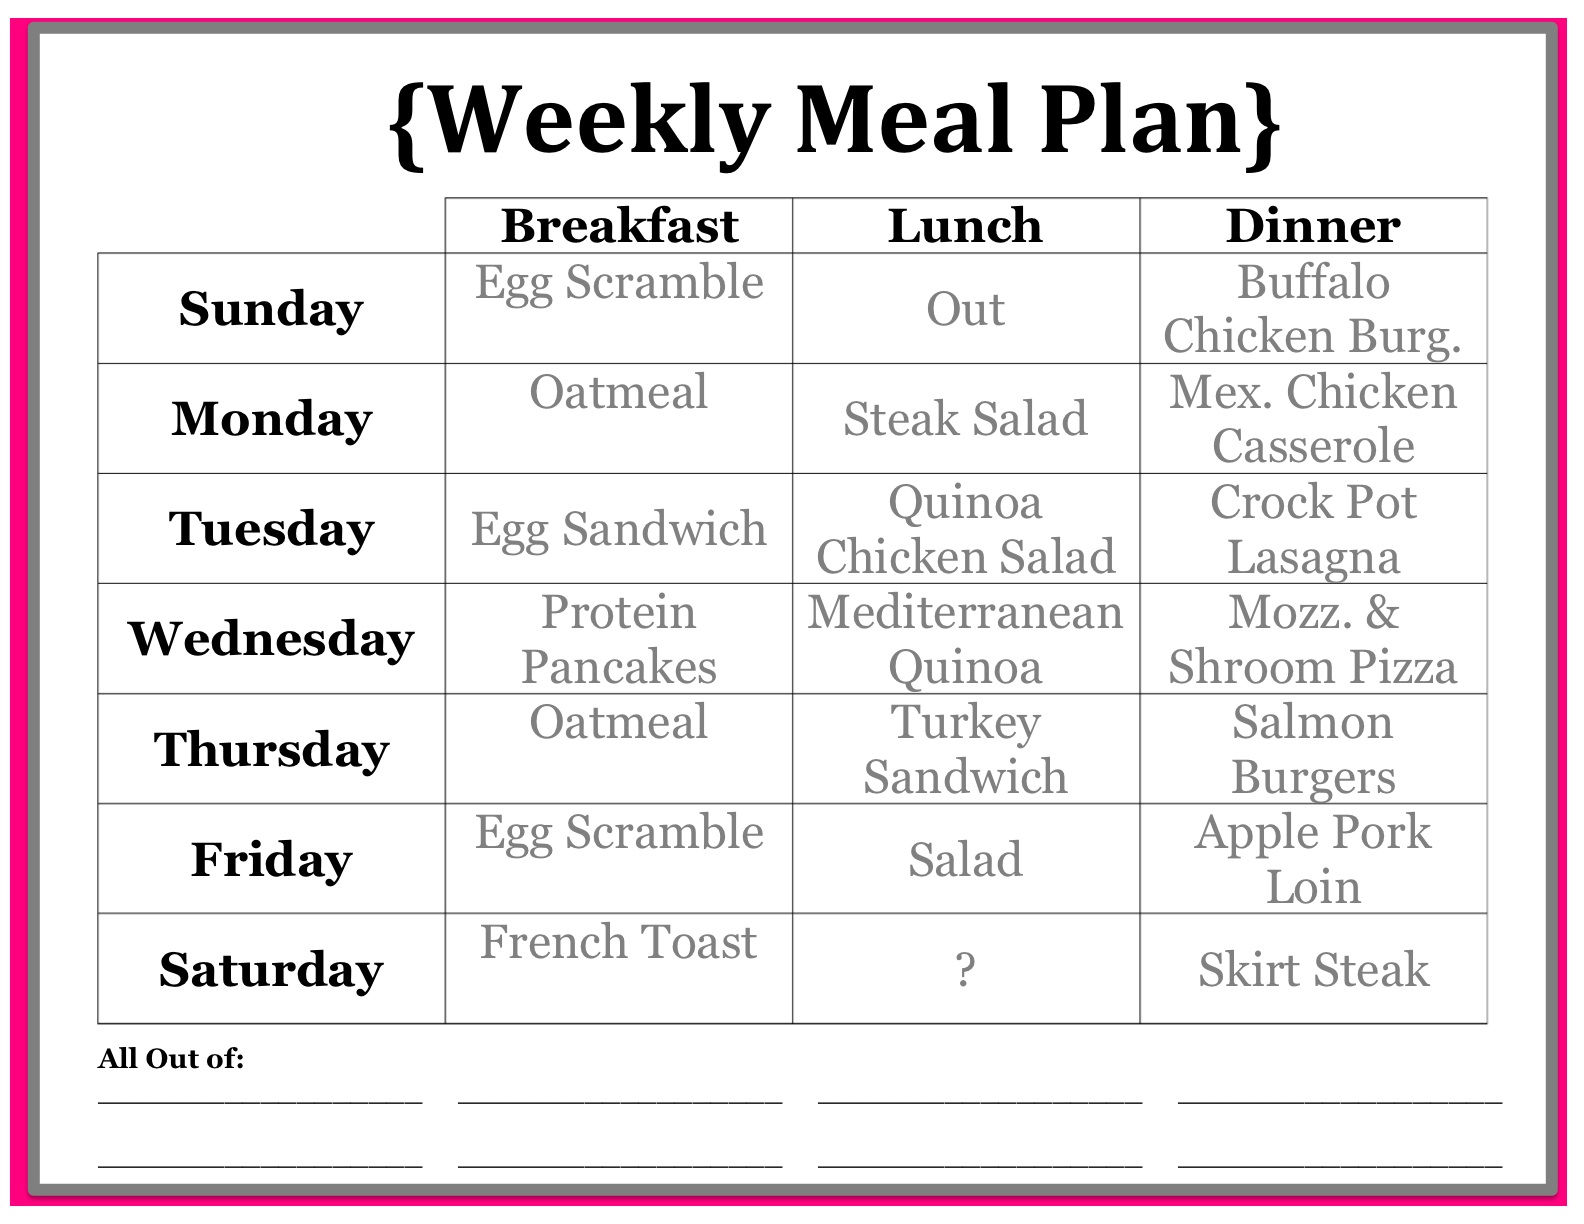 Basic healthy eating plan - Nutrisystem 7 Day Meal Plan